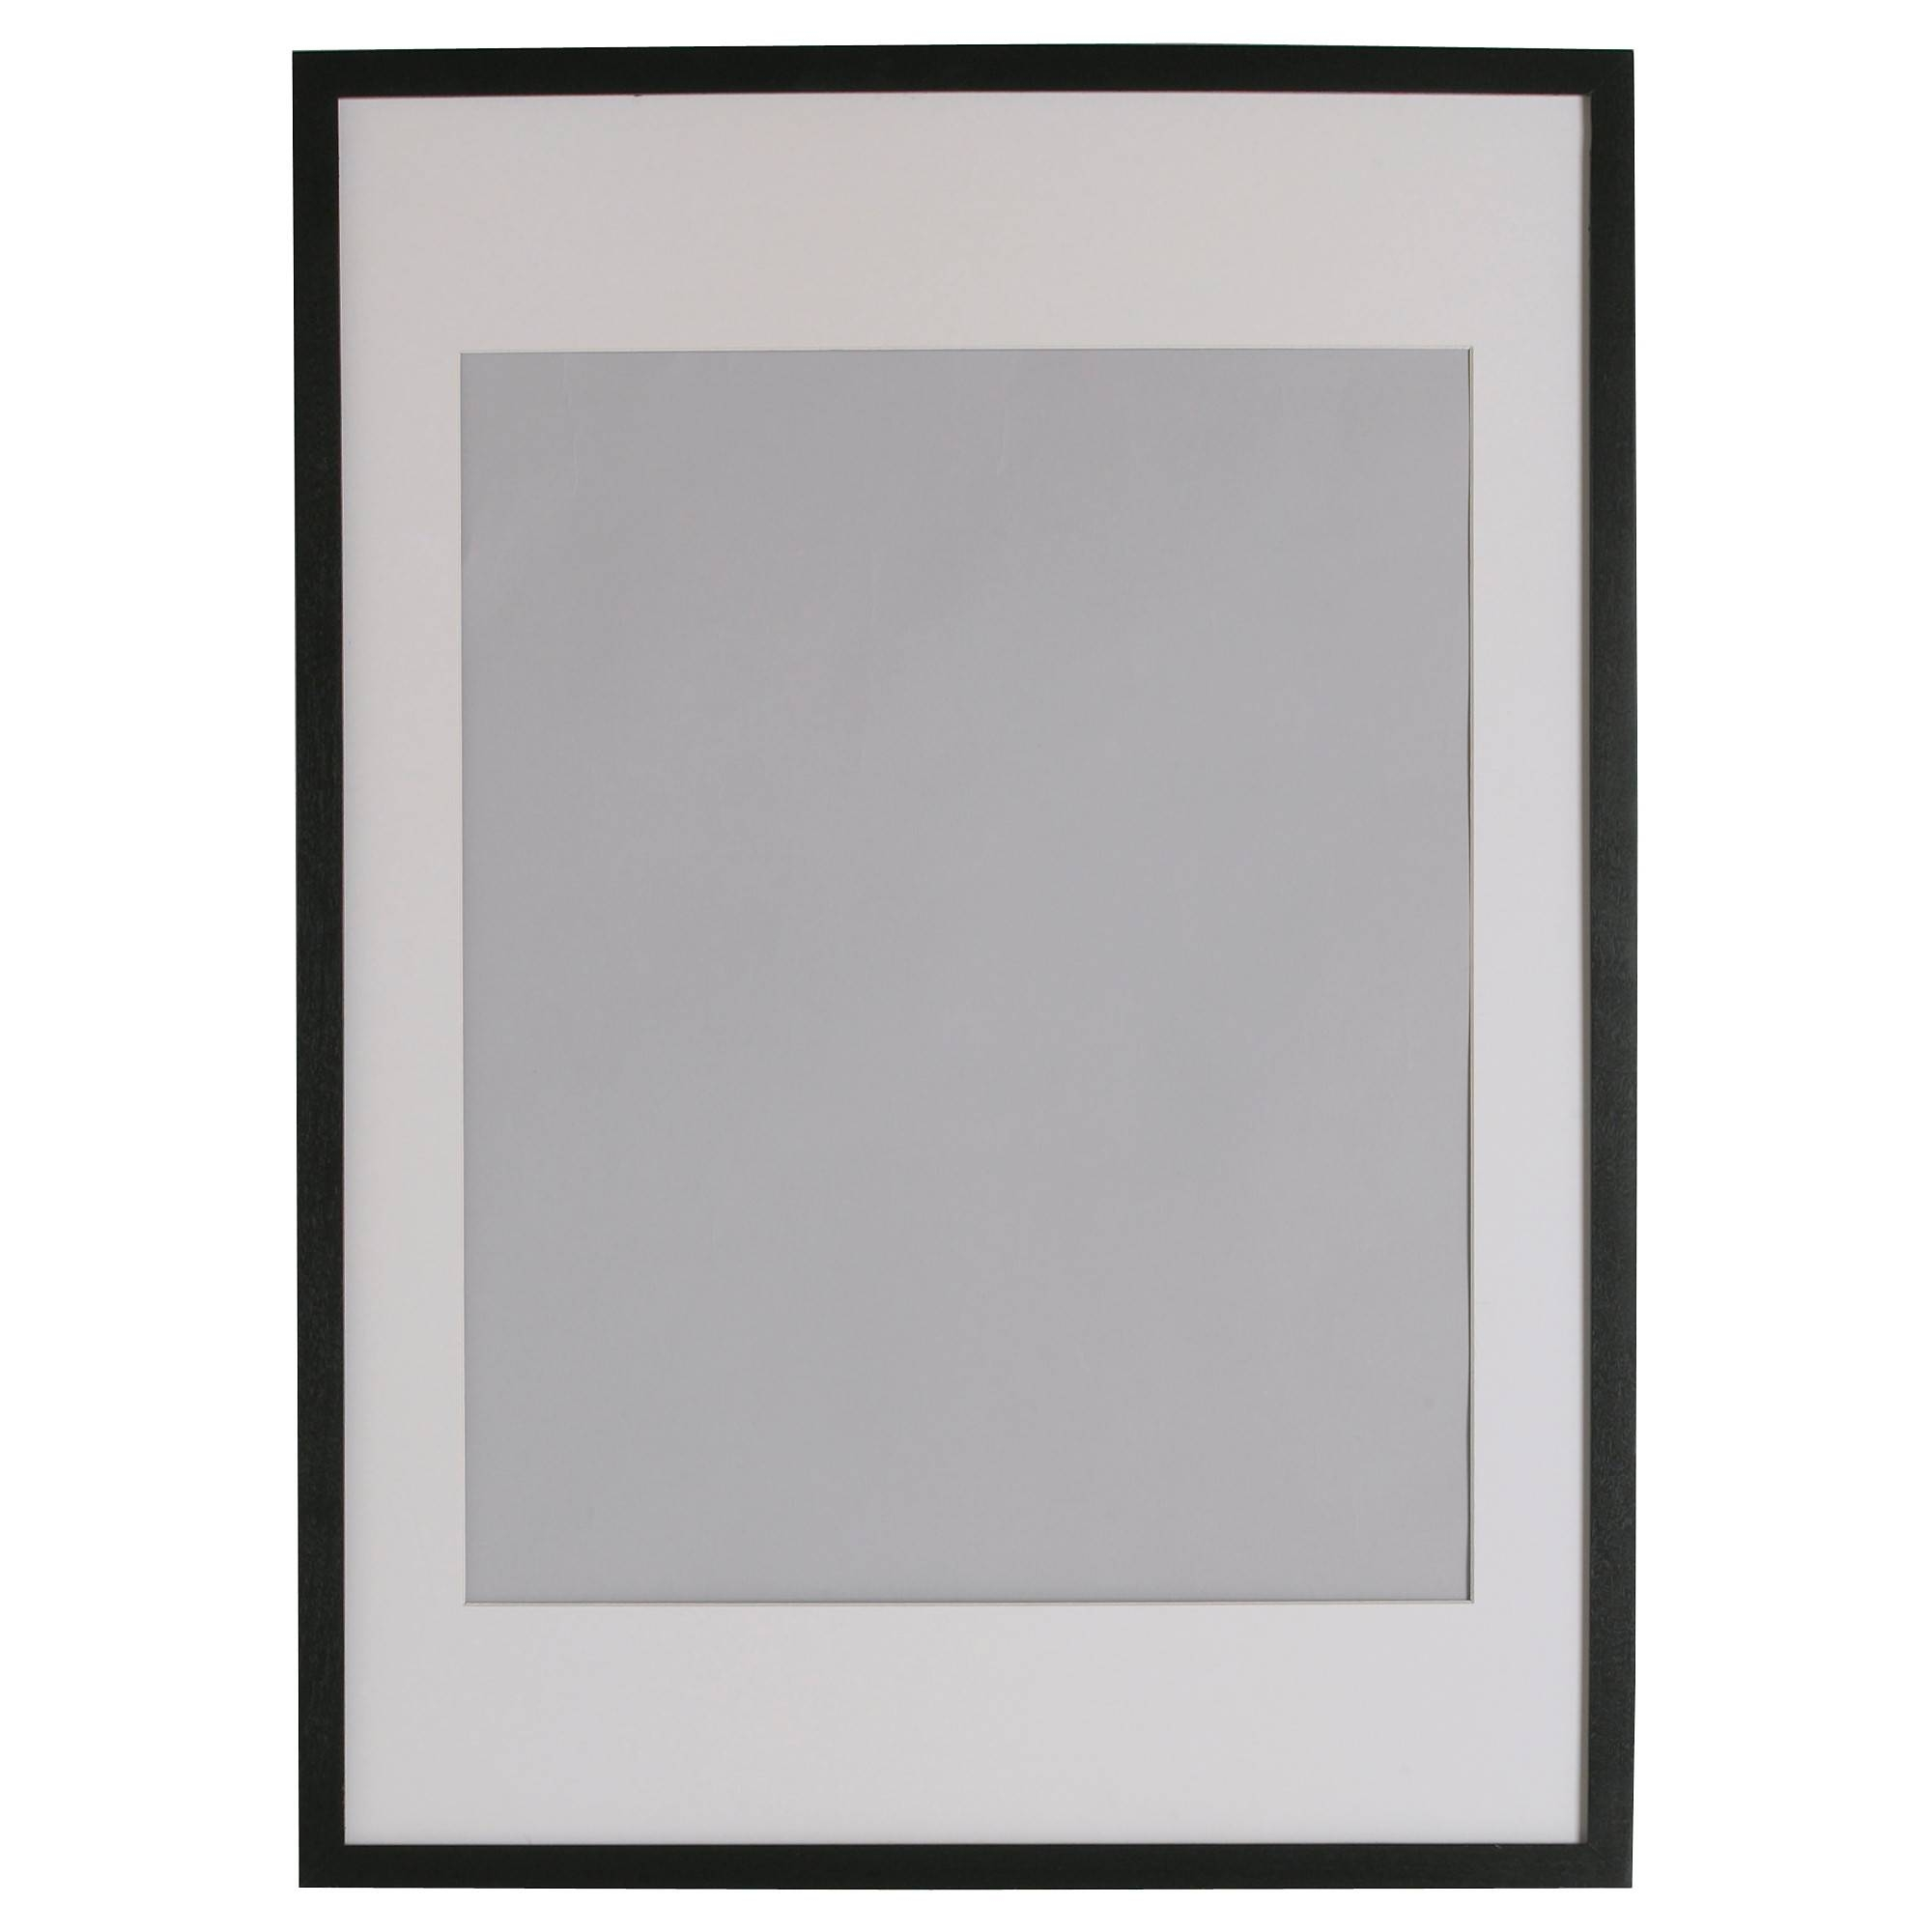 Wall Frames – Frames & Pictures – Ikea With Regard To Most Current Ikea Metal Wall Art (View 20 of 20)